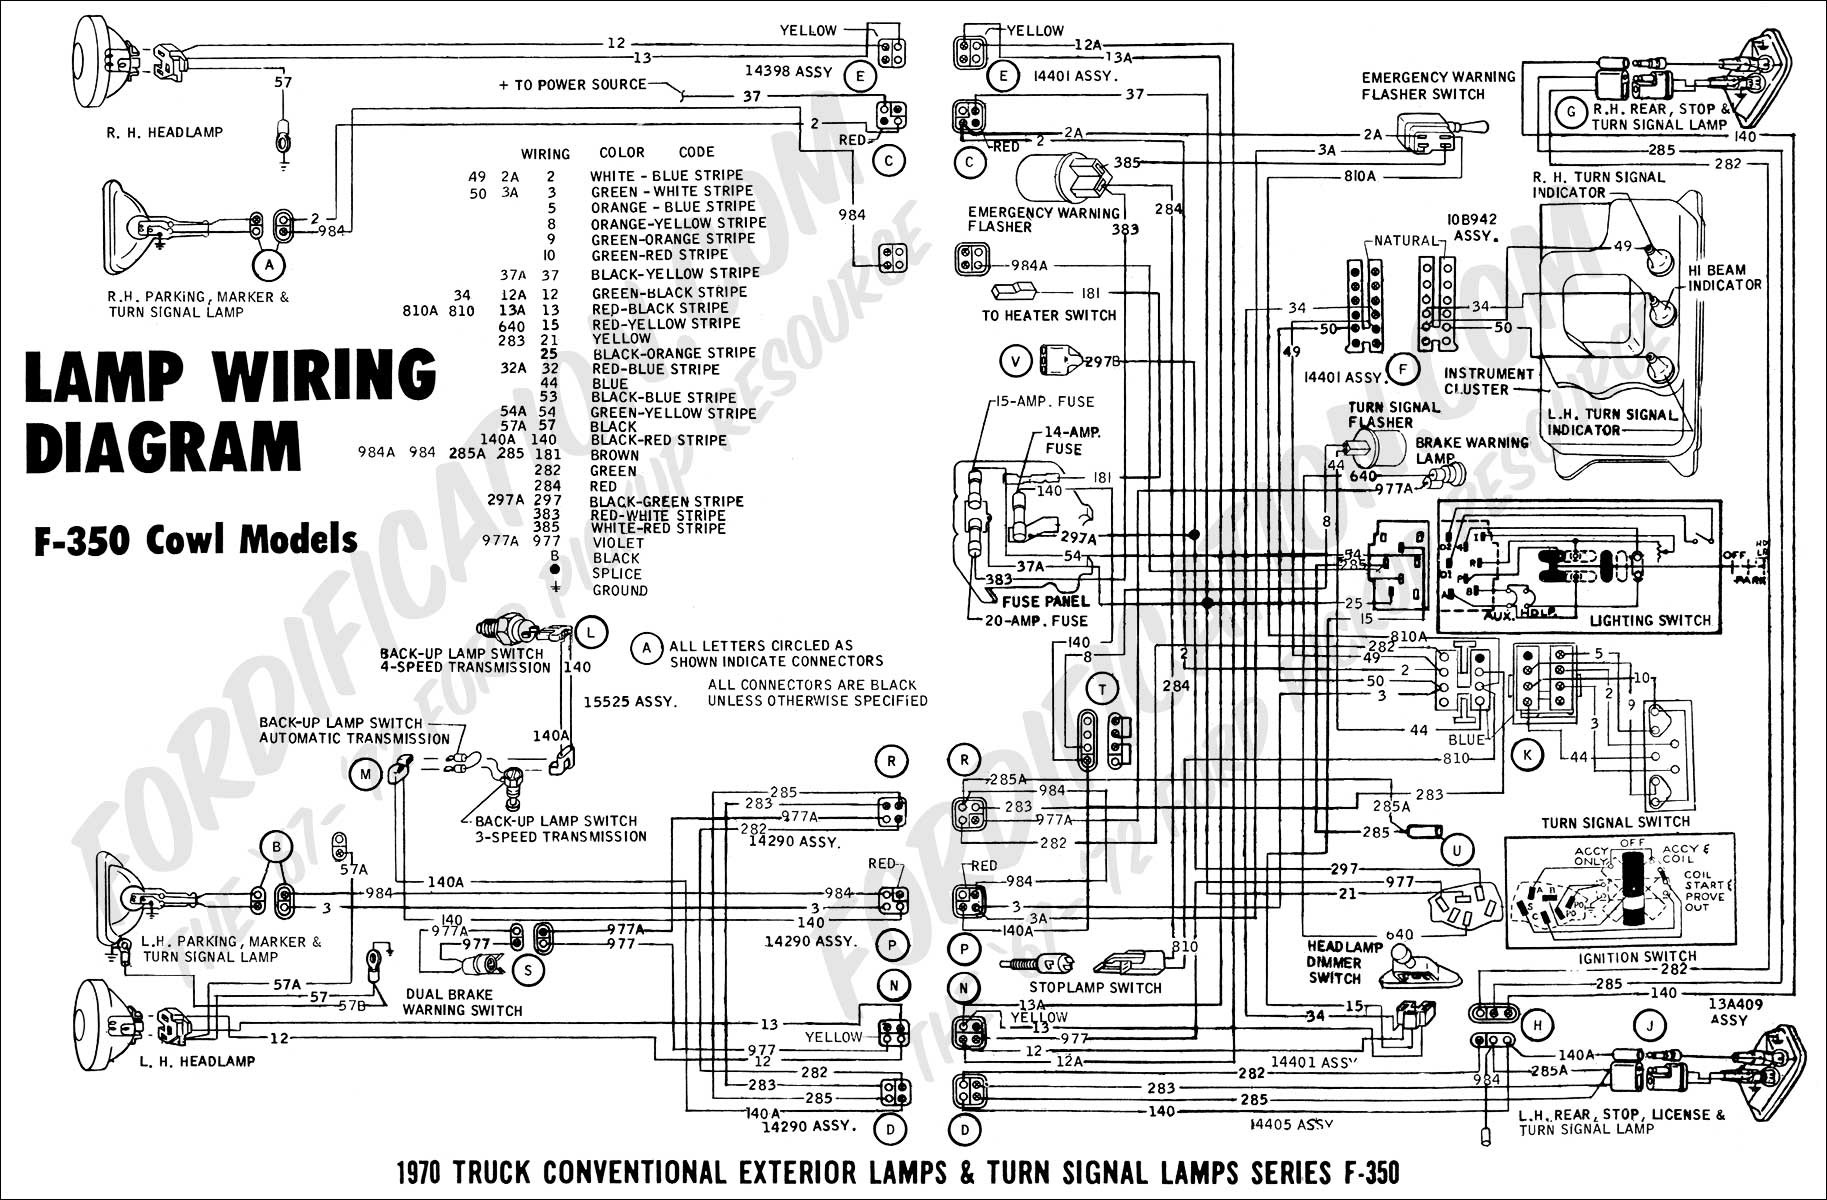 2005 ford f350 ke light wiring diagram wiring diagram rh pm23 mikroflex de